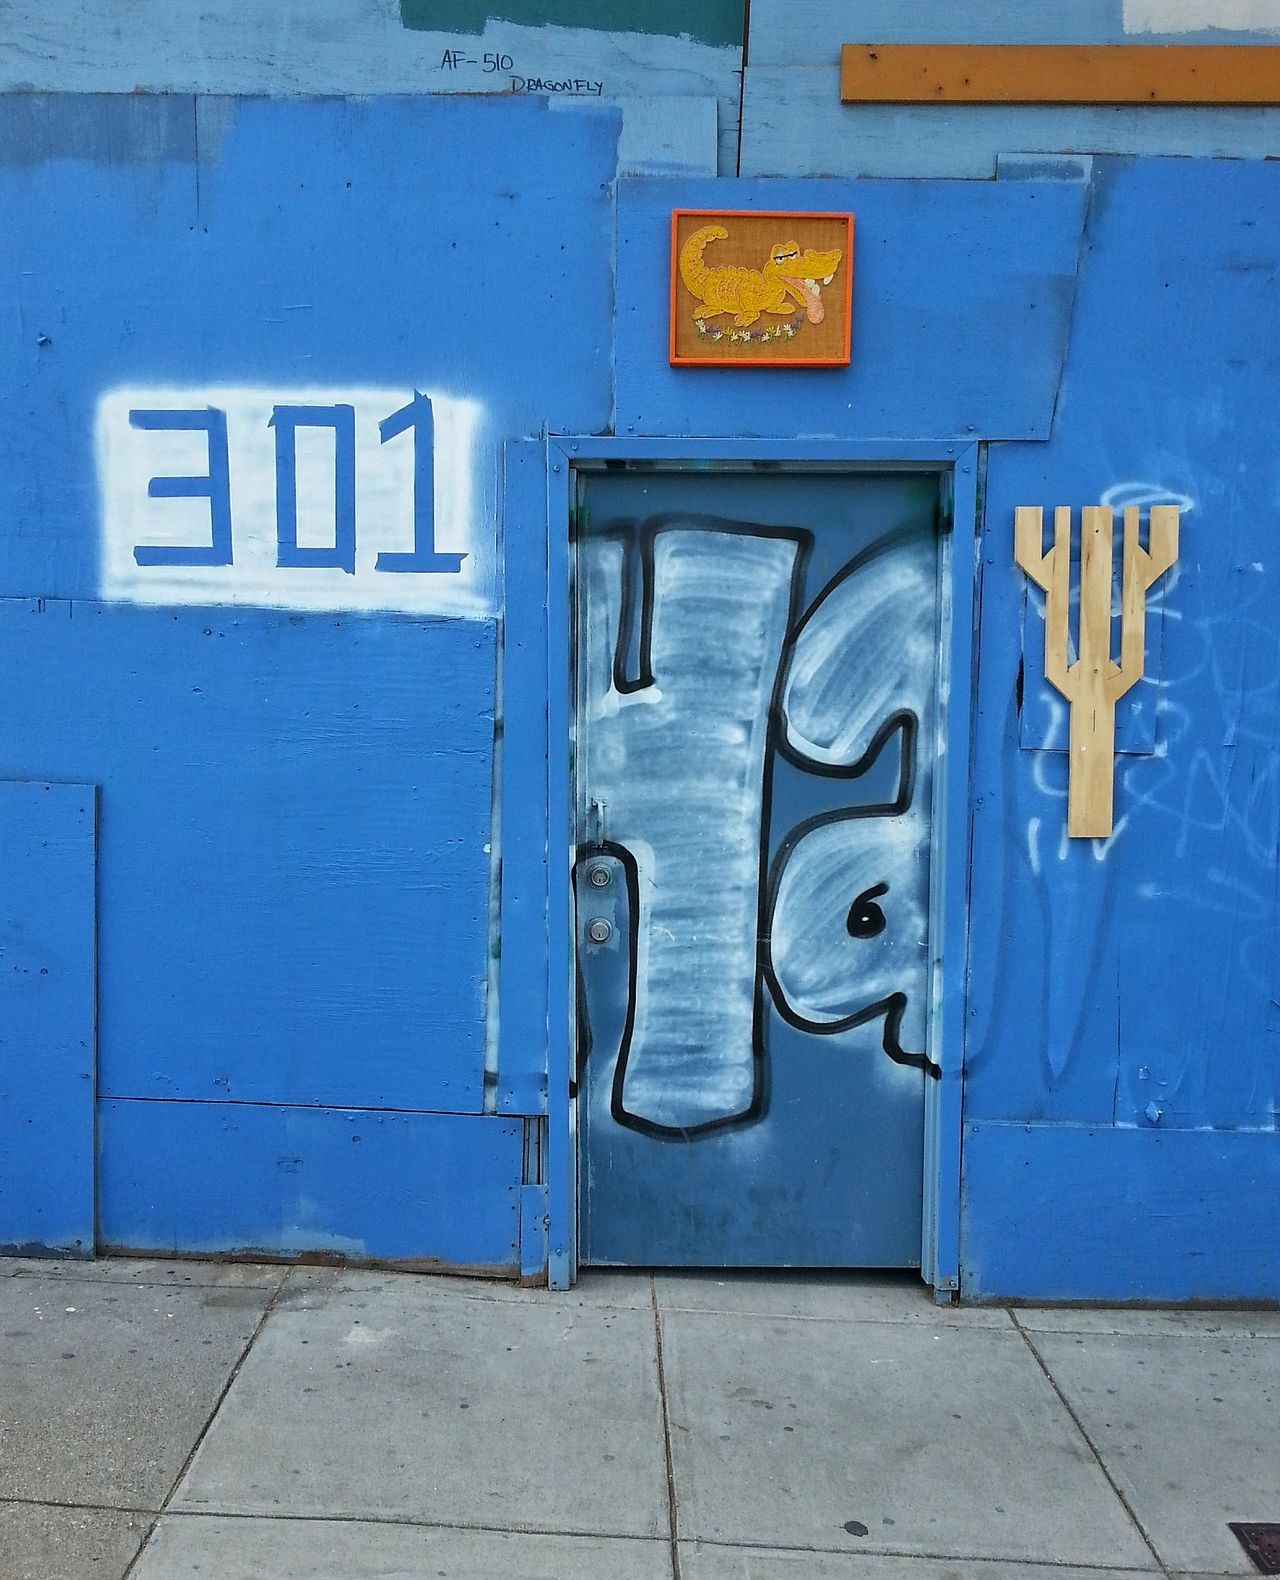 301 Architecture Blue Building Exterior California Day Door Doors Mobilephotography No People Number Outdoors Samsung Samsung Galaxy S III San Francisco Snapseed Street Life Street Photography Text